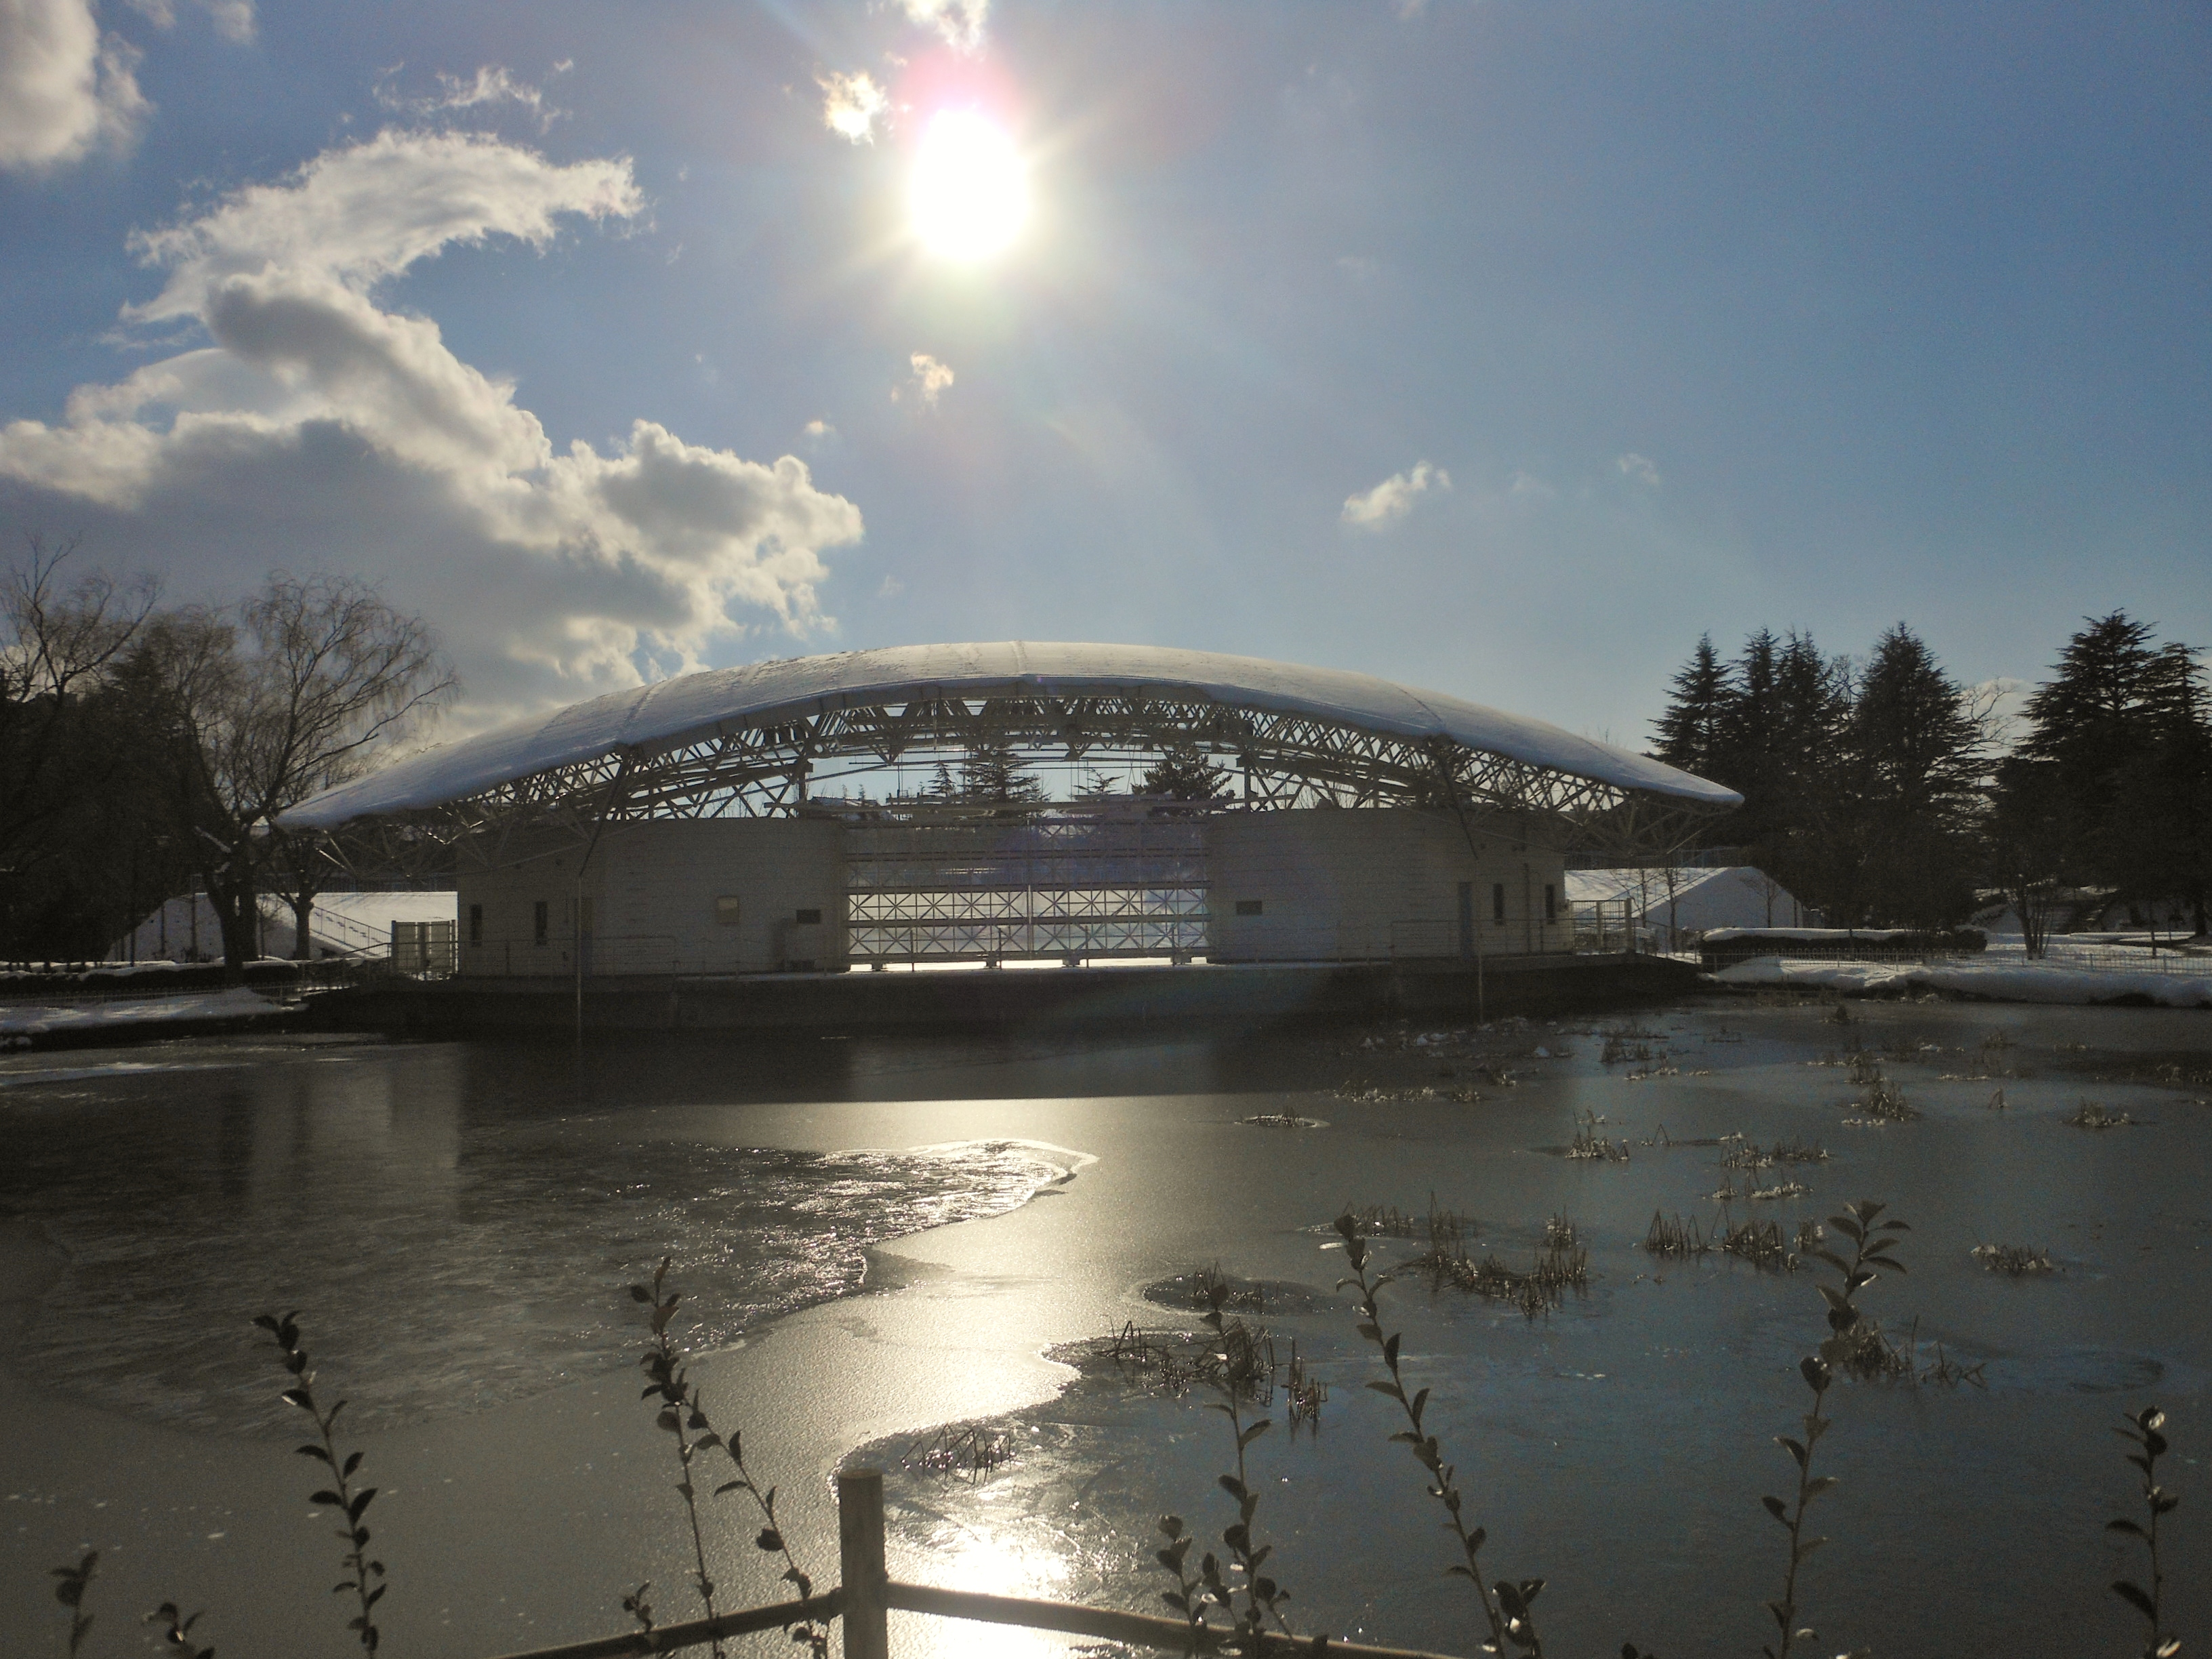 File:Kaiseizan Outdoor Concert Theater in Snow.jpg - Wikimedia Commons